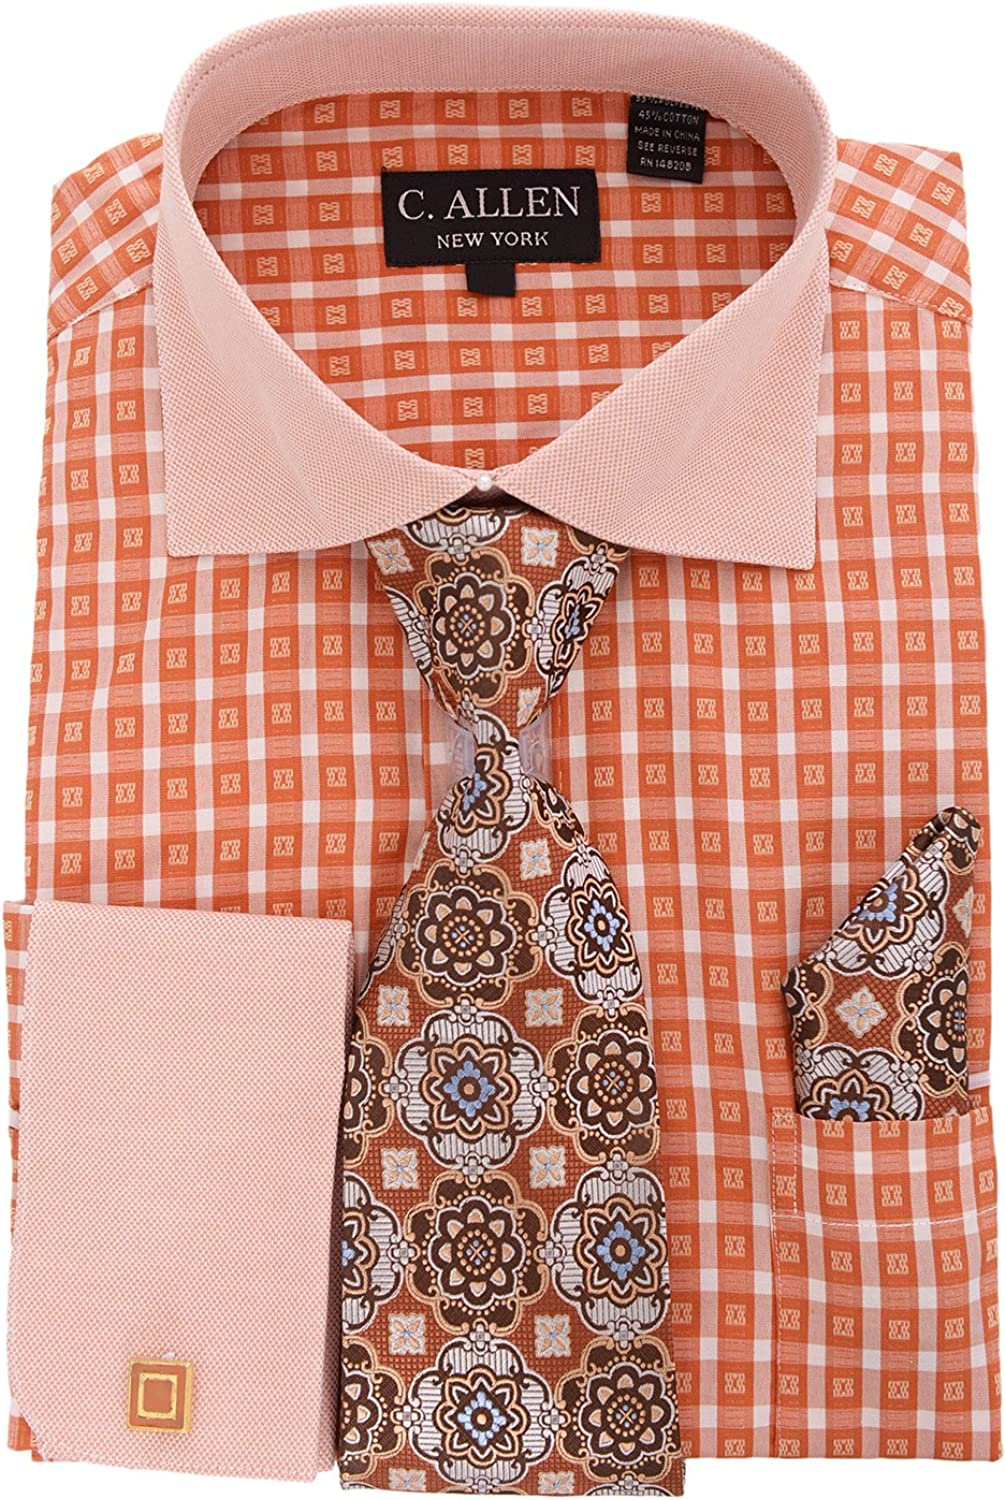 C Allen orange Plaid Spread Collar French Cuff Cotton Dress Shirt Tie Hankie SetORG19.5 67